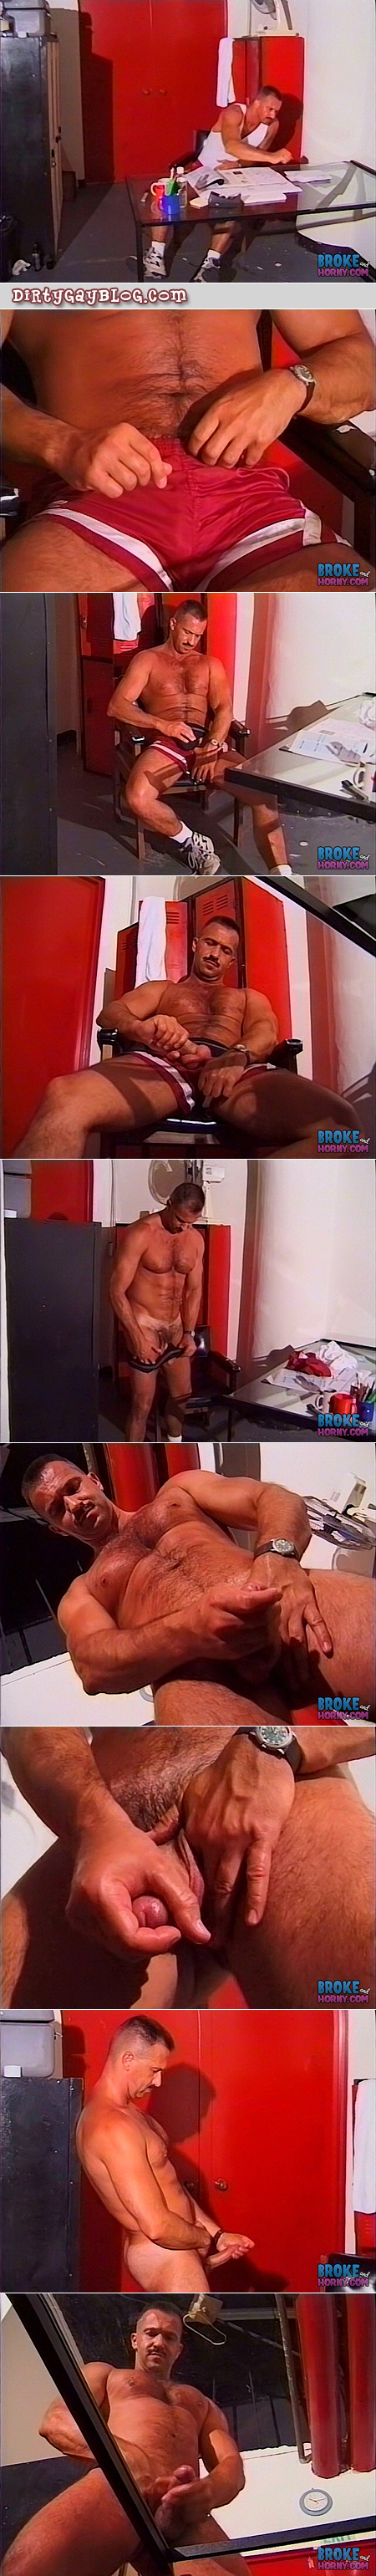 Muscular Coach jacking off in his locker room office.